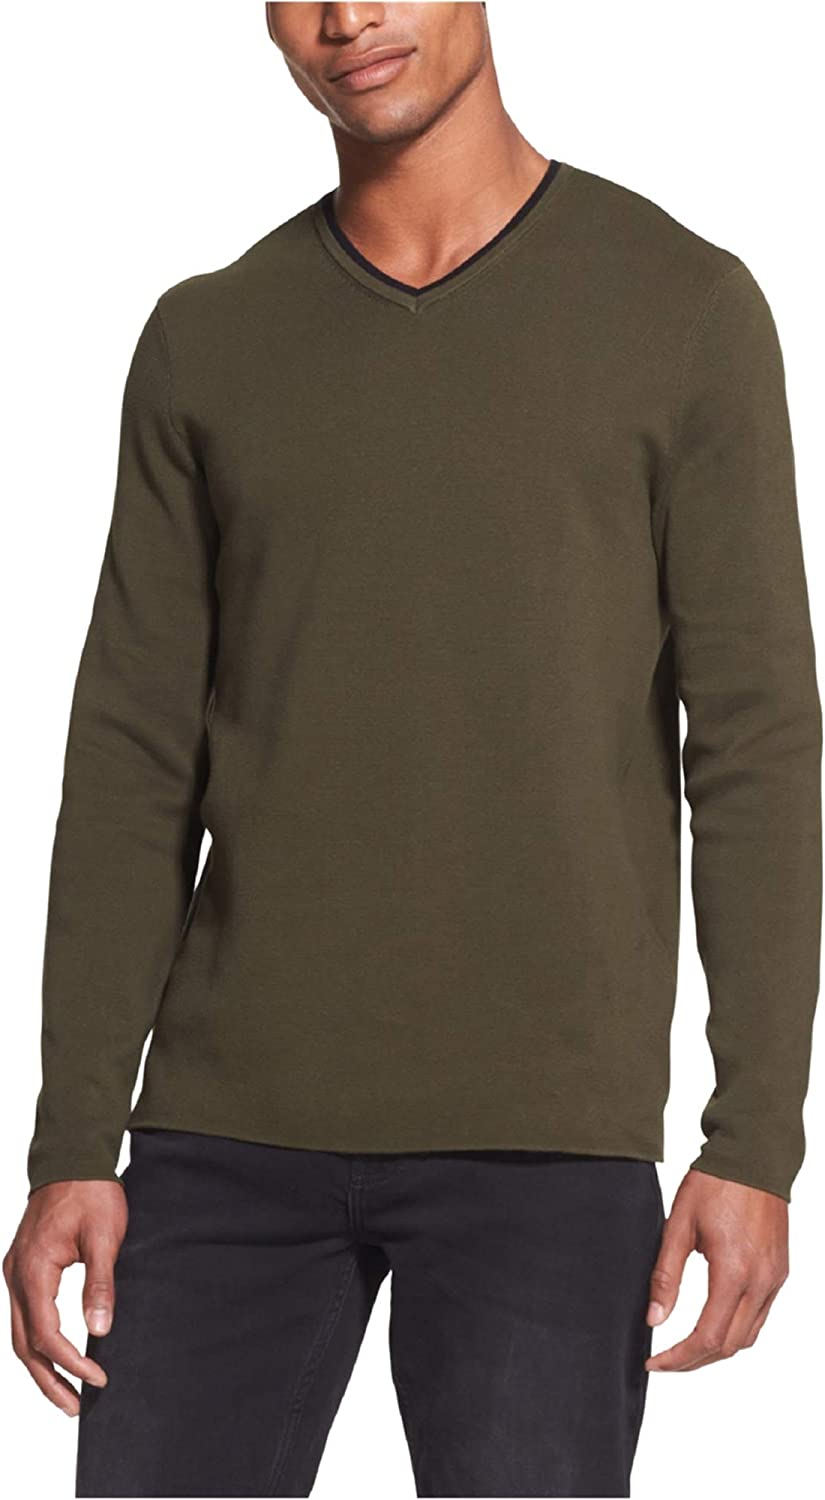 DKNY Mens V-Neck Pullover Sweater, Green, Large